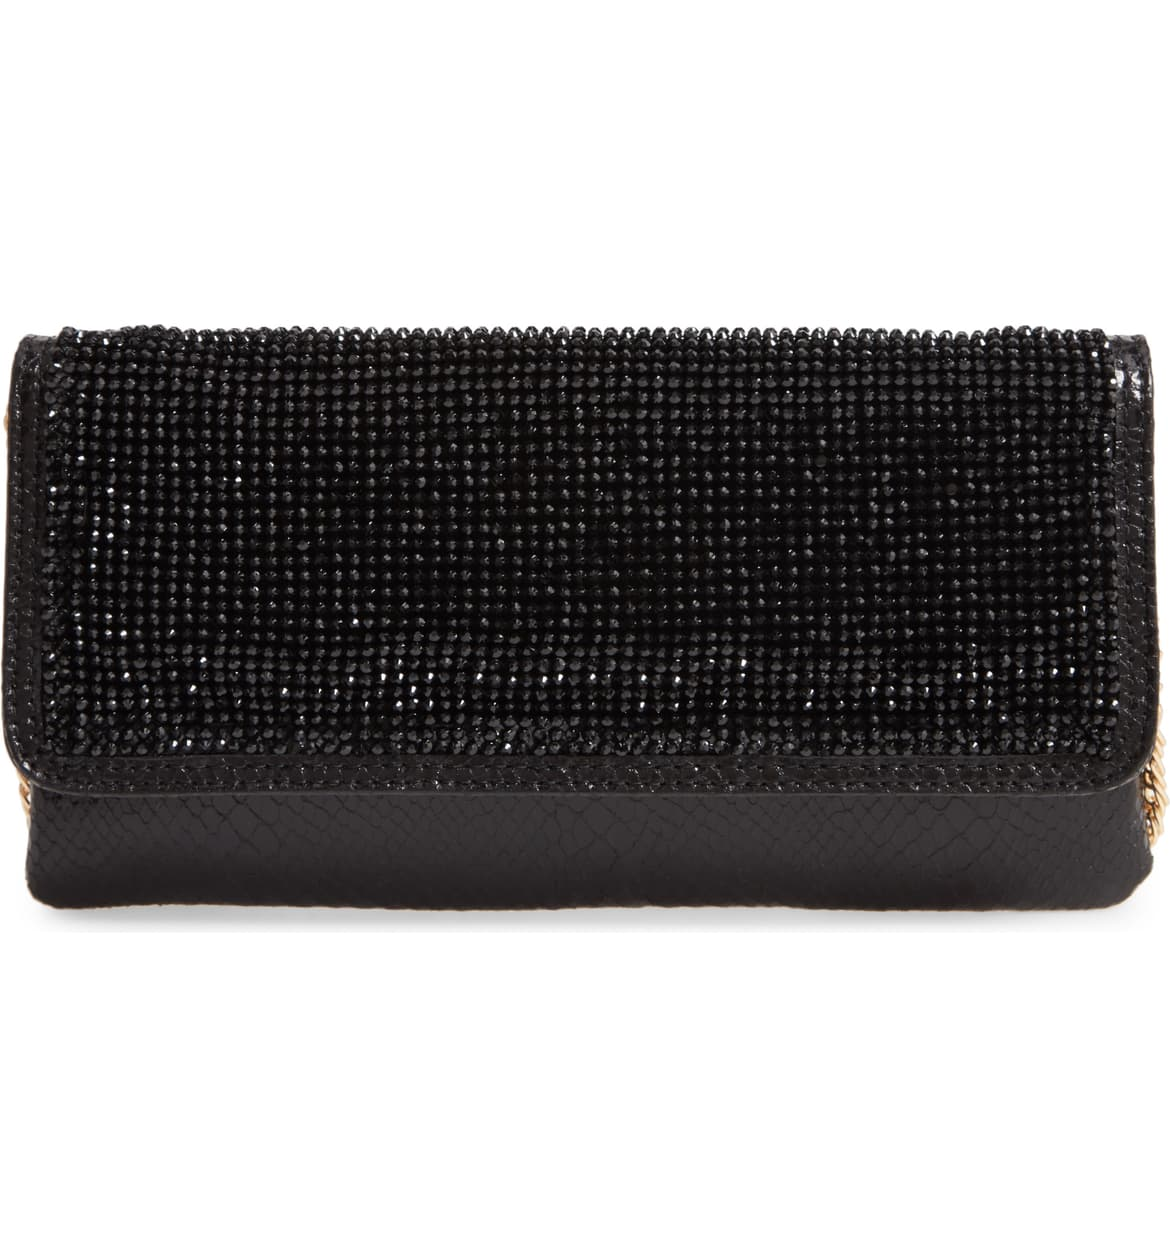 "<a  href=""https://shop.nordstrom.com/s/steve-madden-rhinestone-snakeskin-embossed-clutch/5444730/full?origin=keywordsearch-personalizedsort&breadcrumb=Home%2FAll%20Results&color=black"" target=""_blank"" title=""https://shop.nordstrom.com/s/steve-madden-rhinestone-snakeskin-embossed-clutch/5444730/full?origin=keywordsearch-personalizedsort&breadcrumb=Home%2FAll%20Results&color=black"">Steve Madden Rhinestone Snakeskin Embossed Clutch - $68</a>. From cozy to gold hued to tailored, Nordstrom has the hottest trends for getting glam this holiday season! (Credit: Nordstrom)"